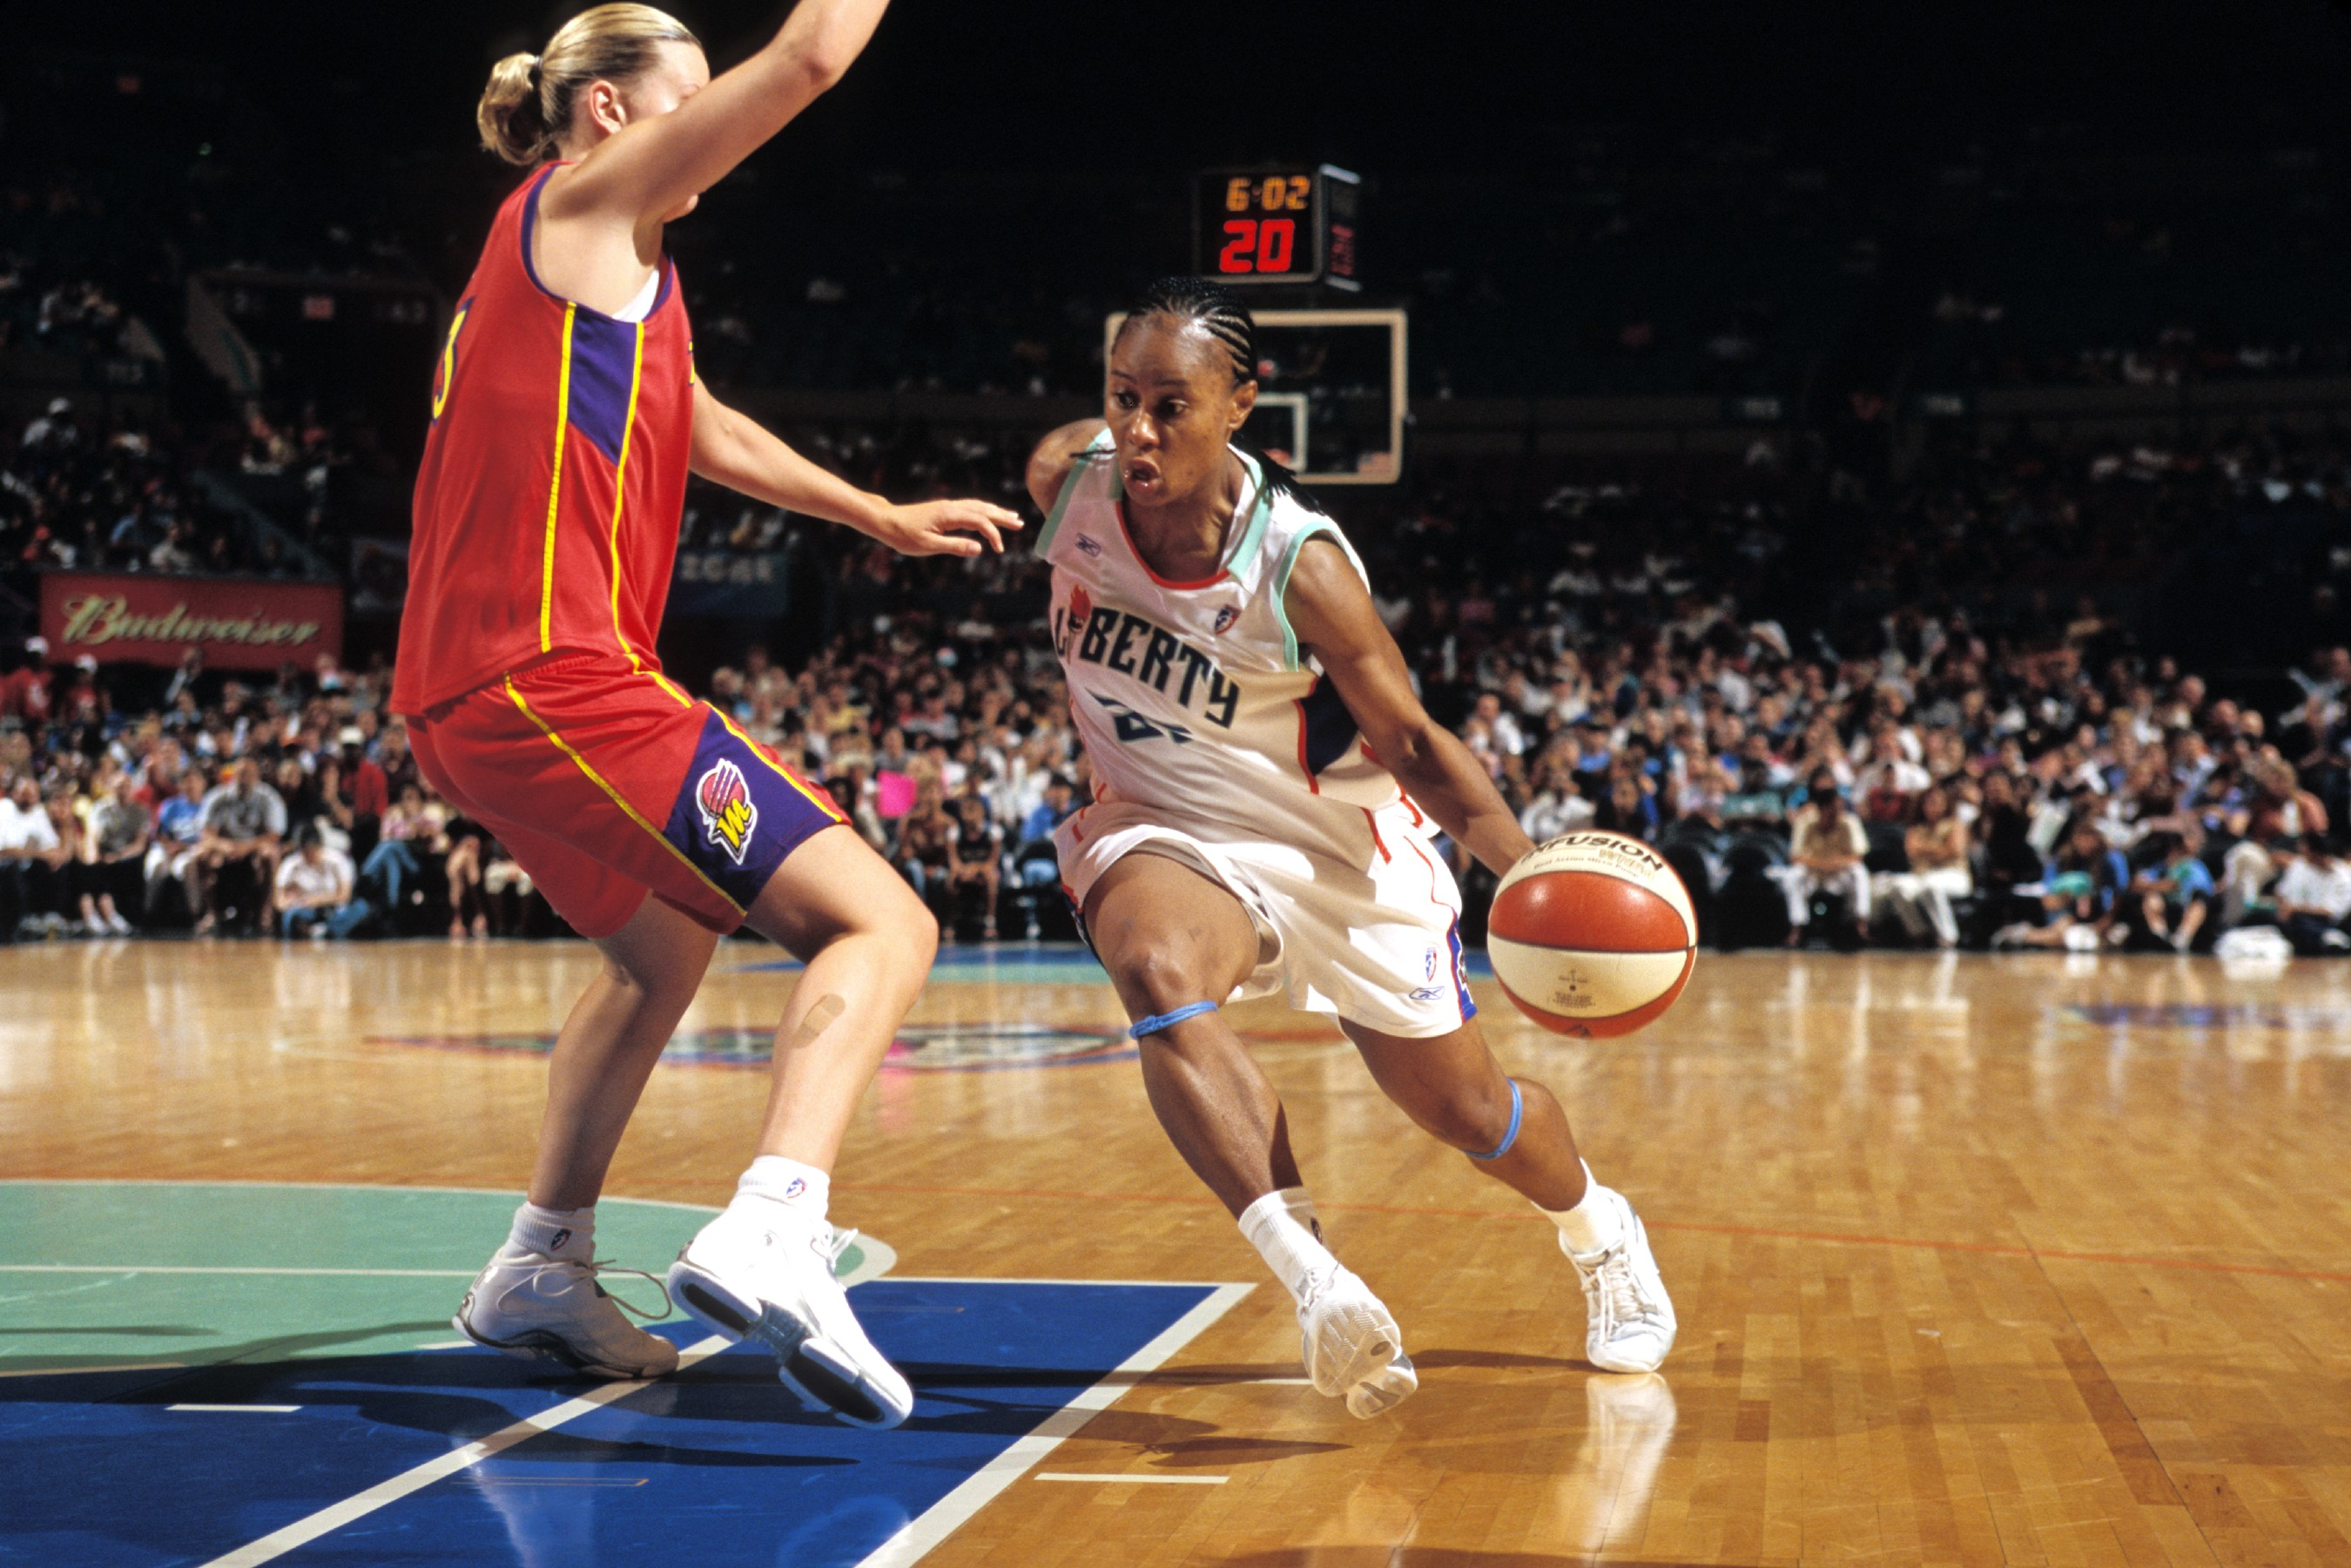 07/11/04, Liberty v. Mercury, Vickie Johnson.